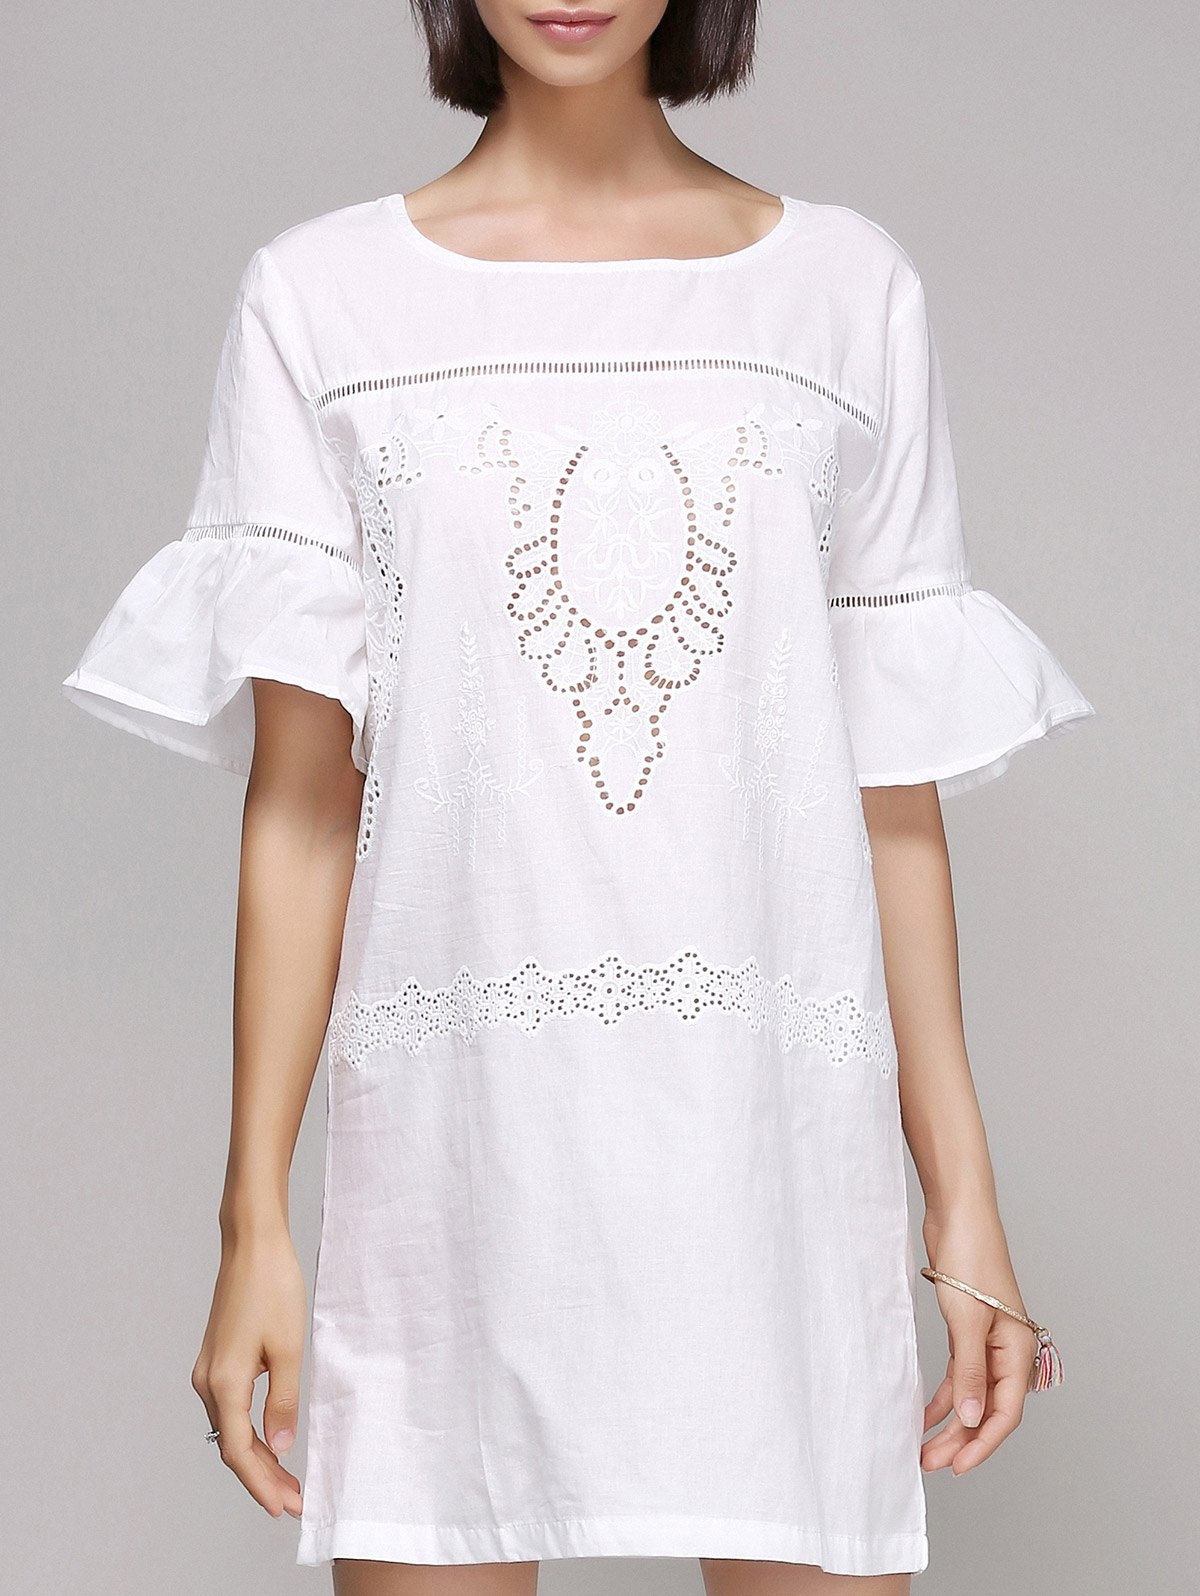 Stylish Flare Sleeve Embroidery Dress For Women - WHITE L